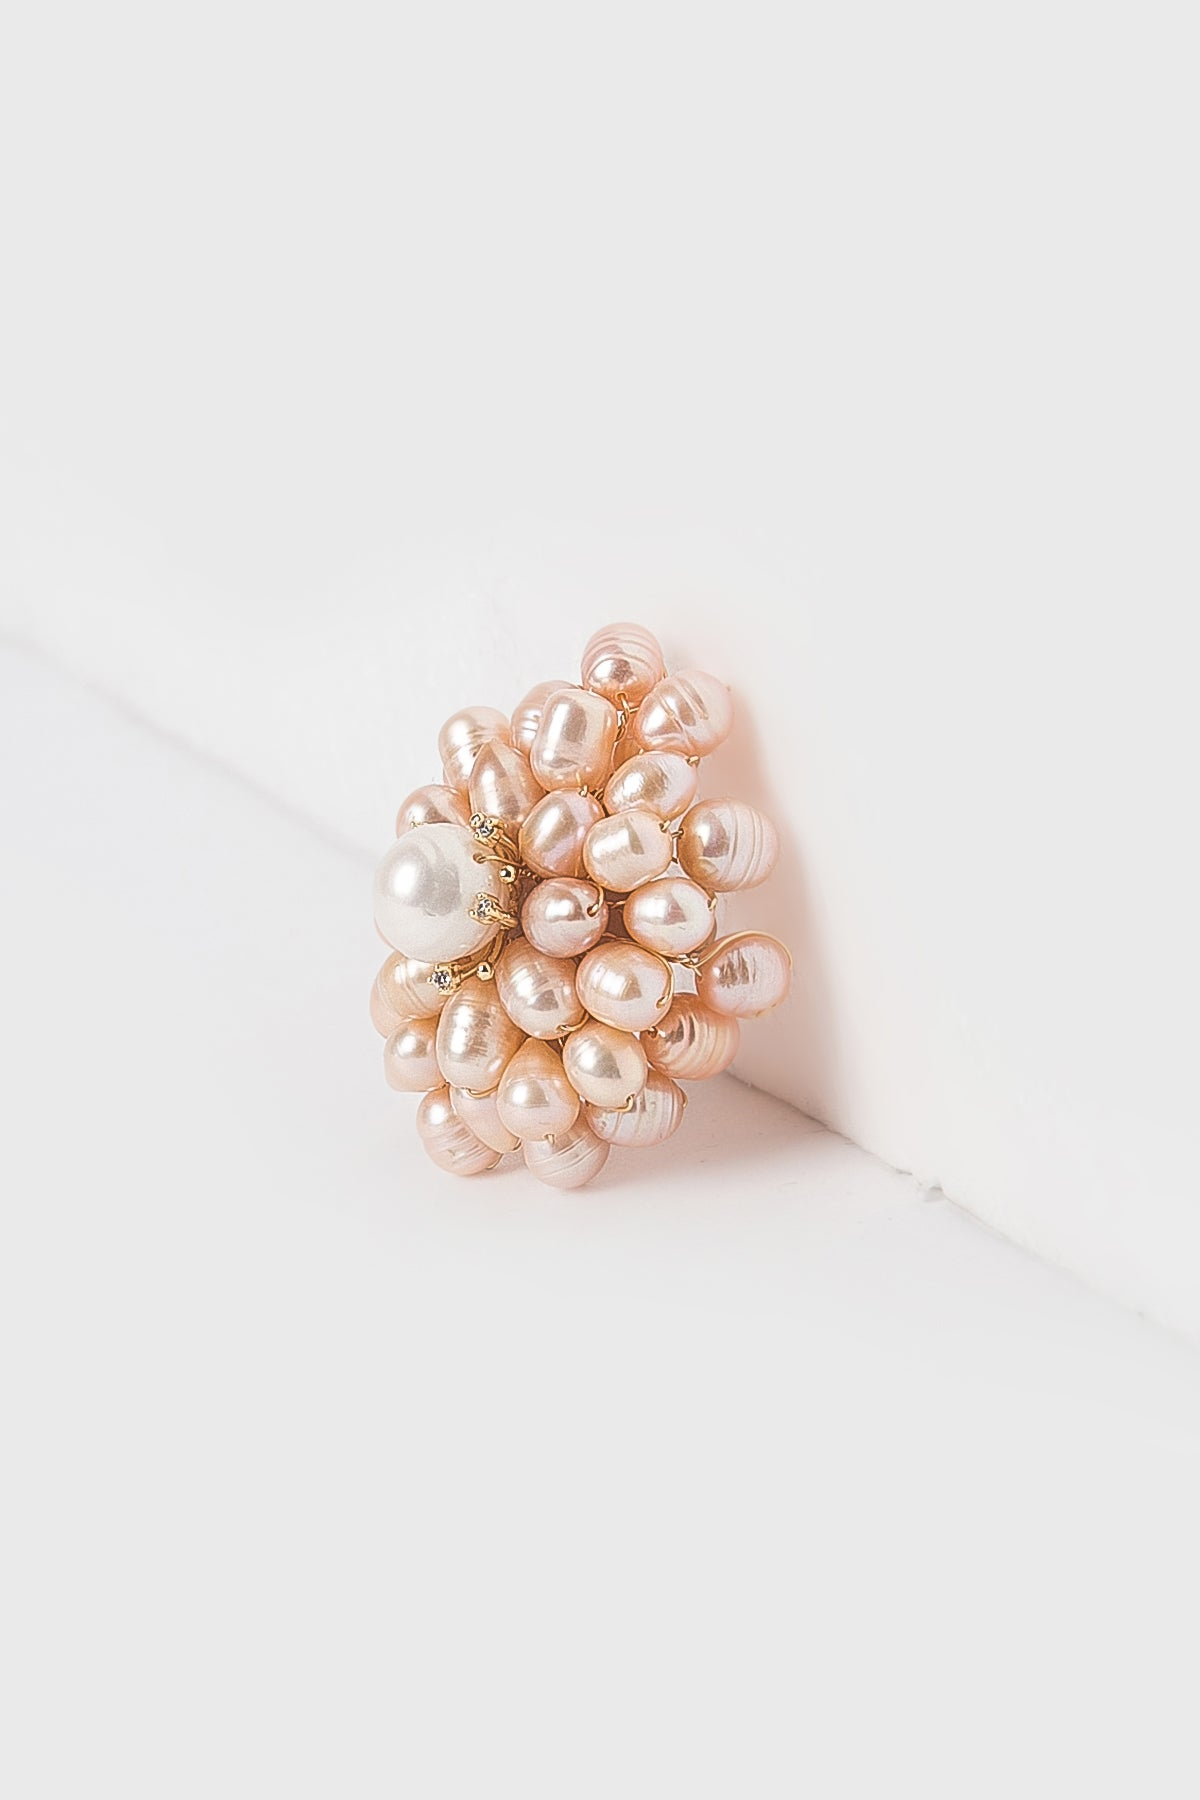 Full Flowers with Pearls Brooch in Pink